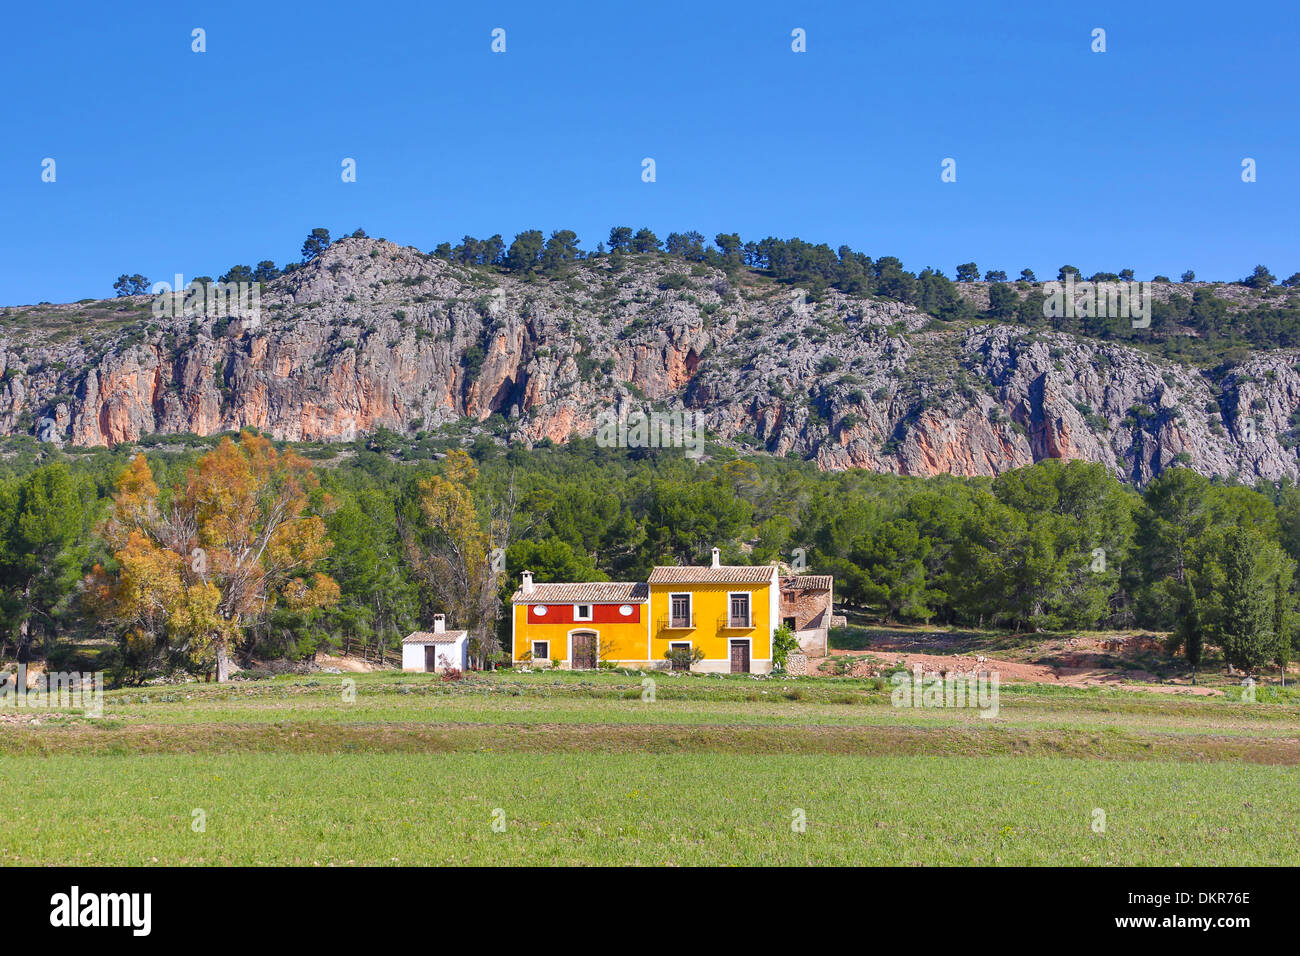 Spain europe murcia province country side colourful country side house landscape mountain peaceful rock simple skyline